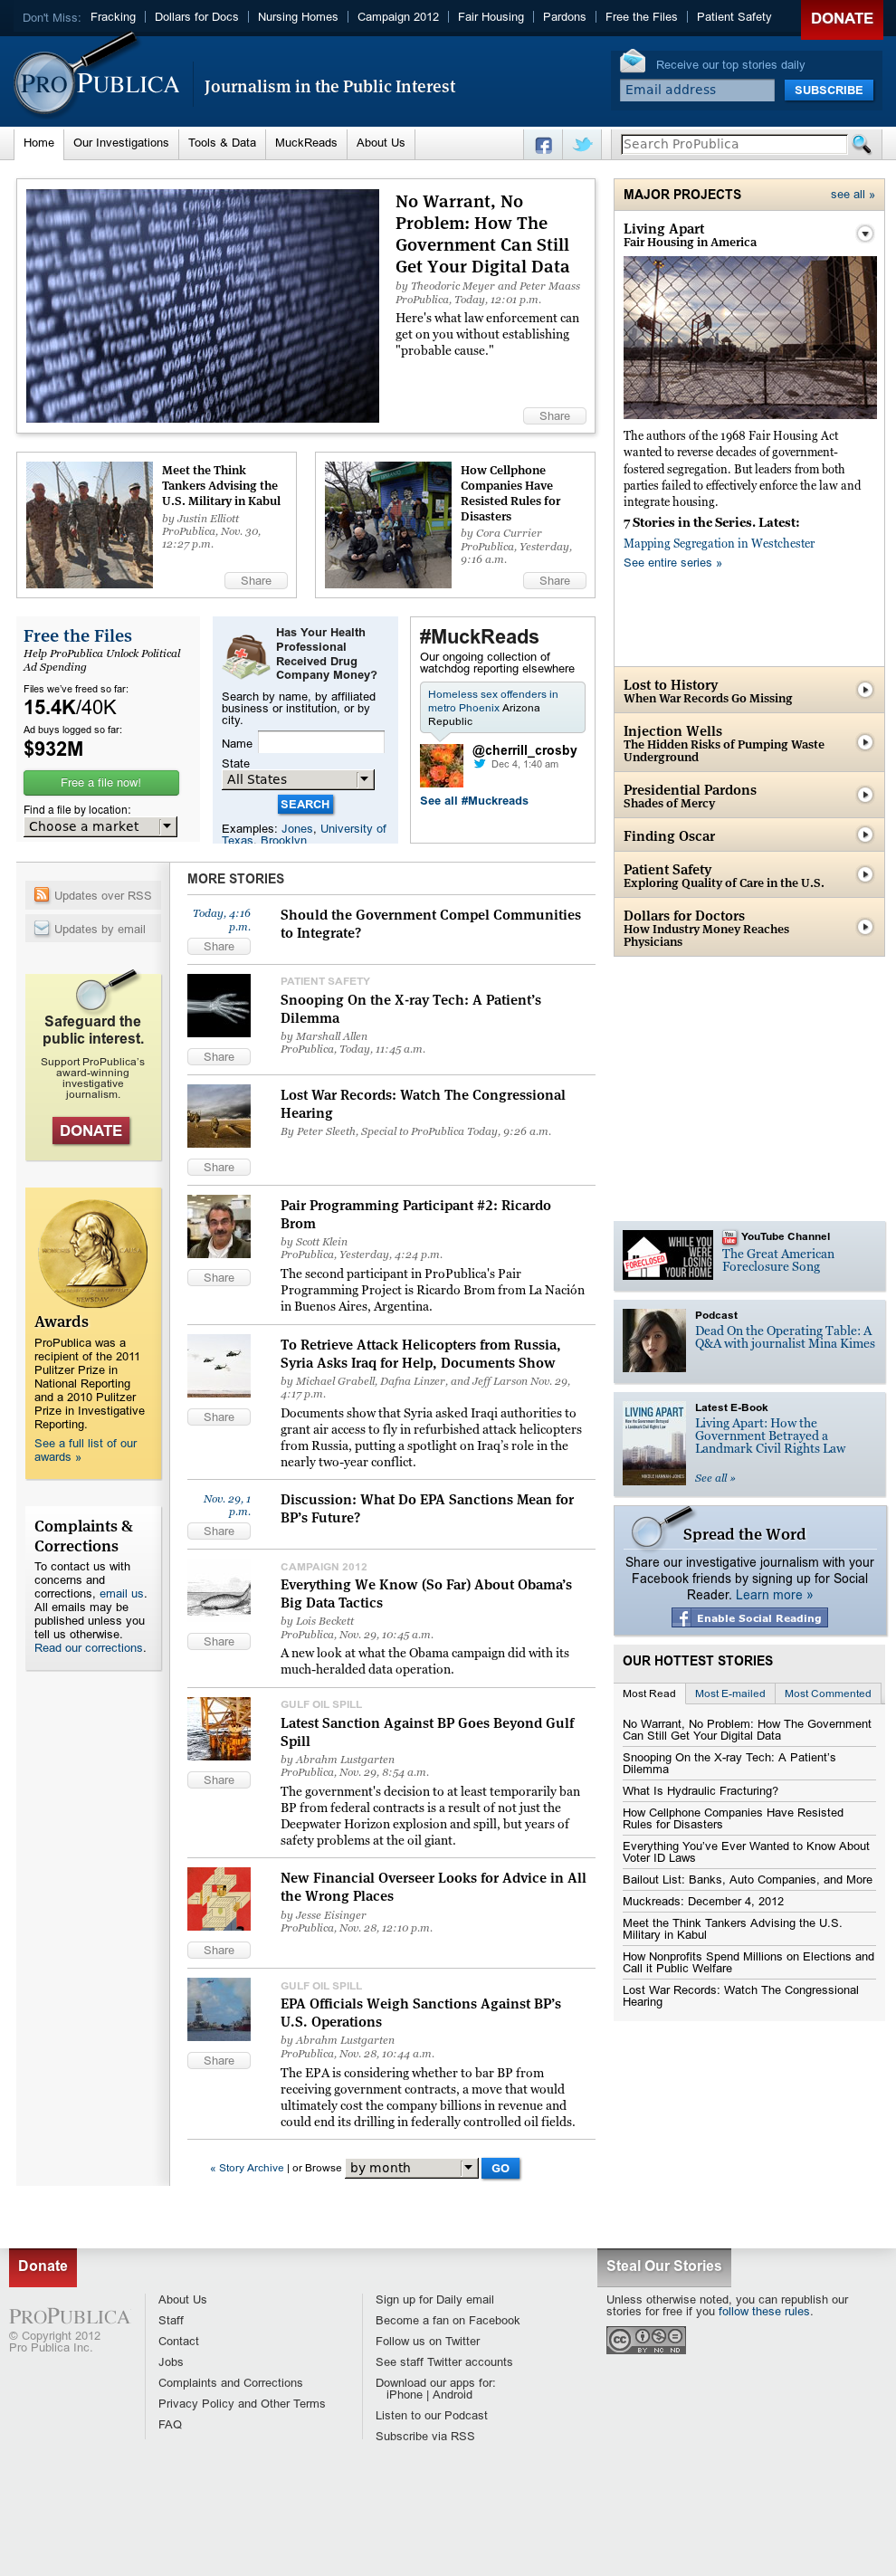 ProPublica at Wednesday Dec. 5, 2012, 12:25 a.m. UTC